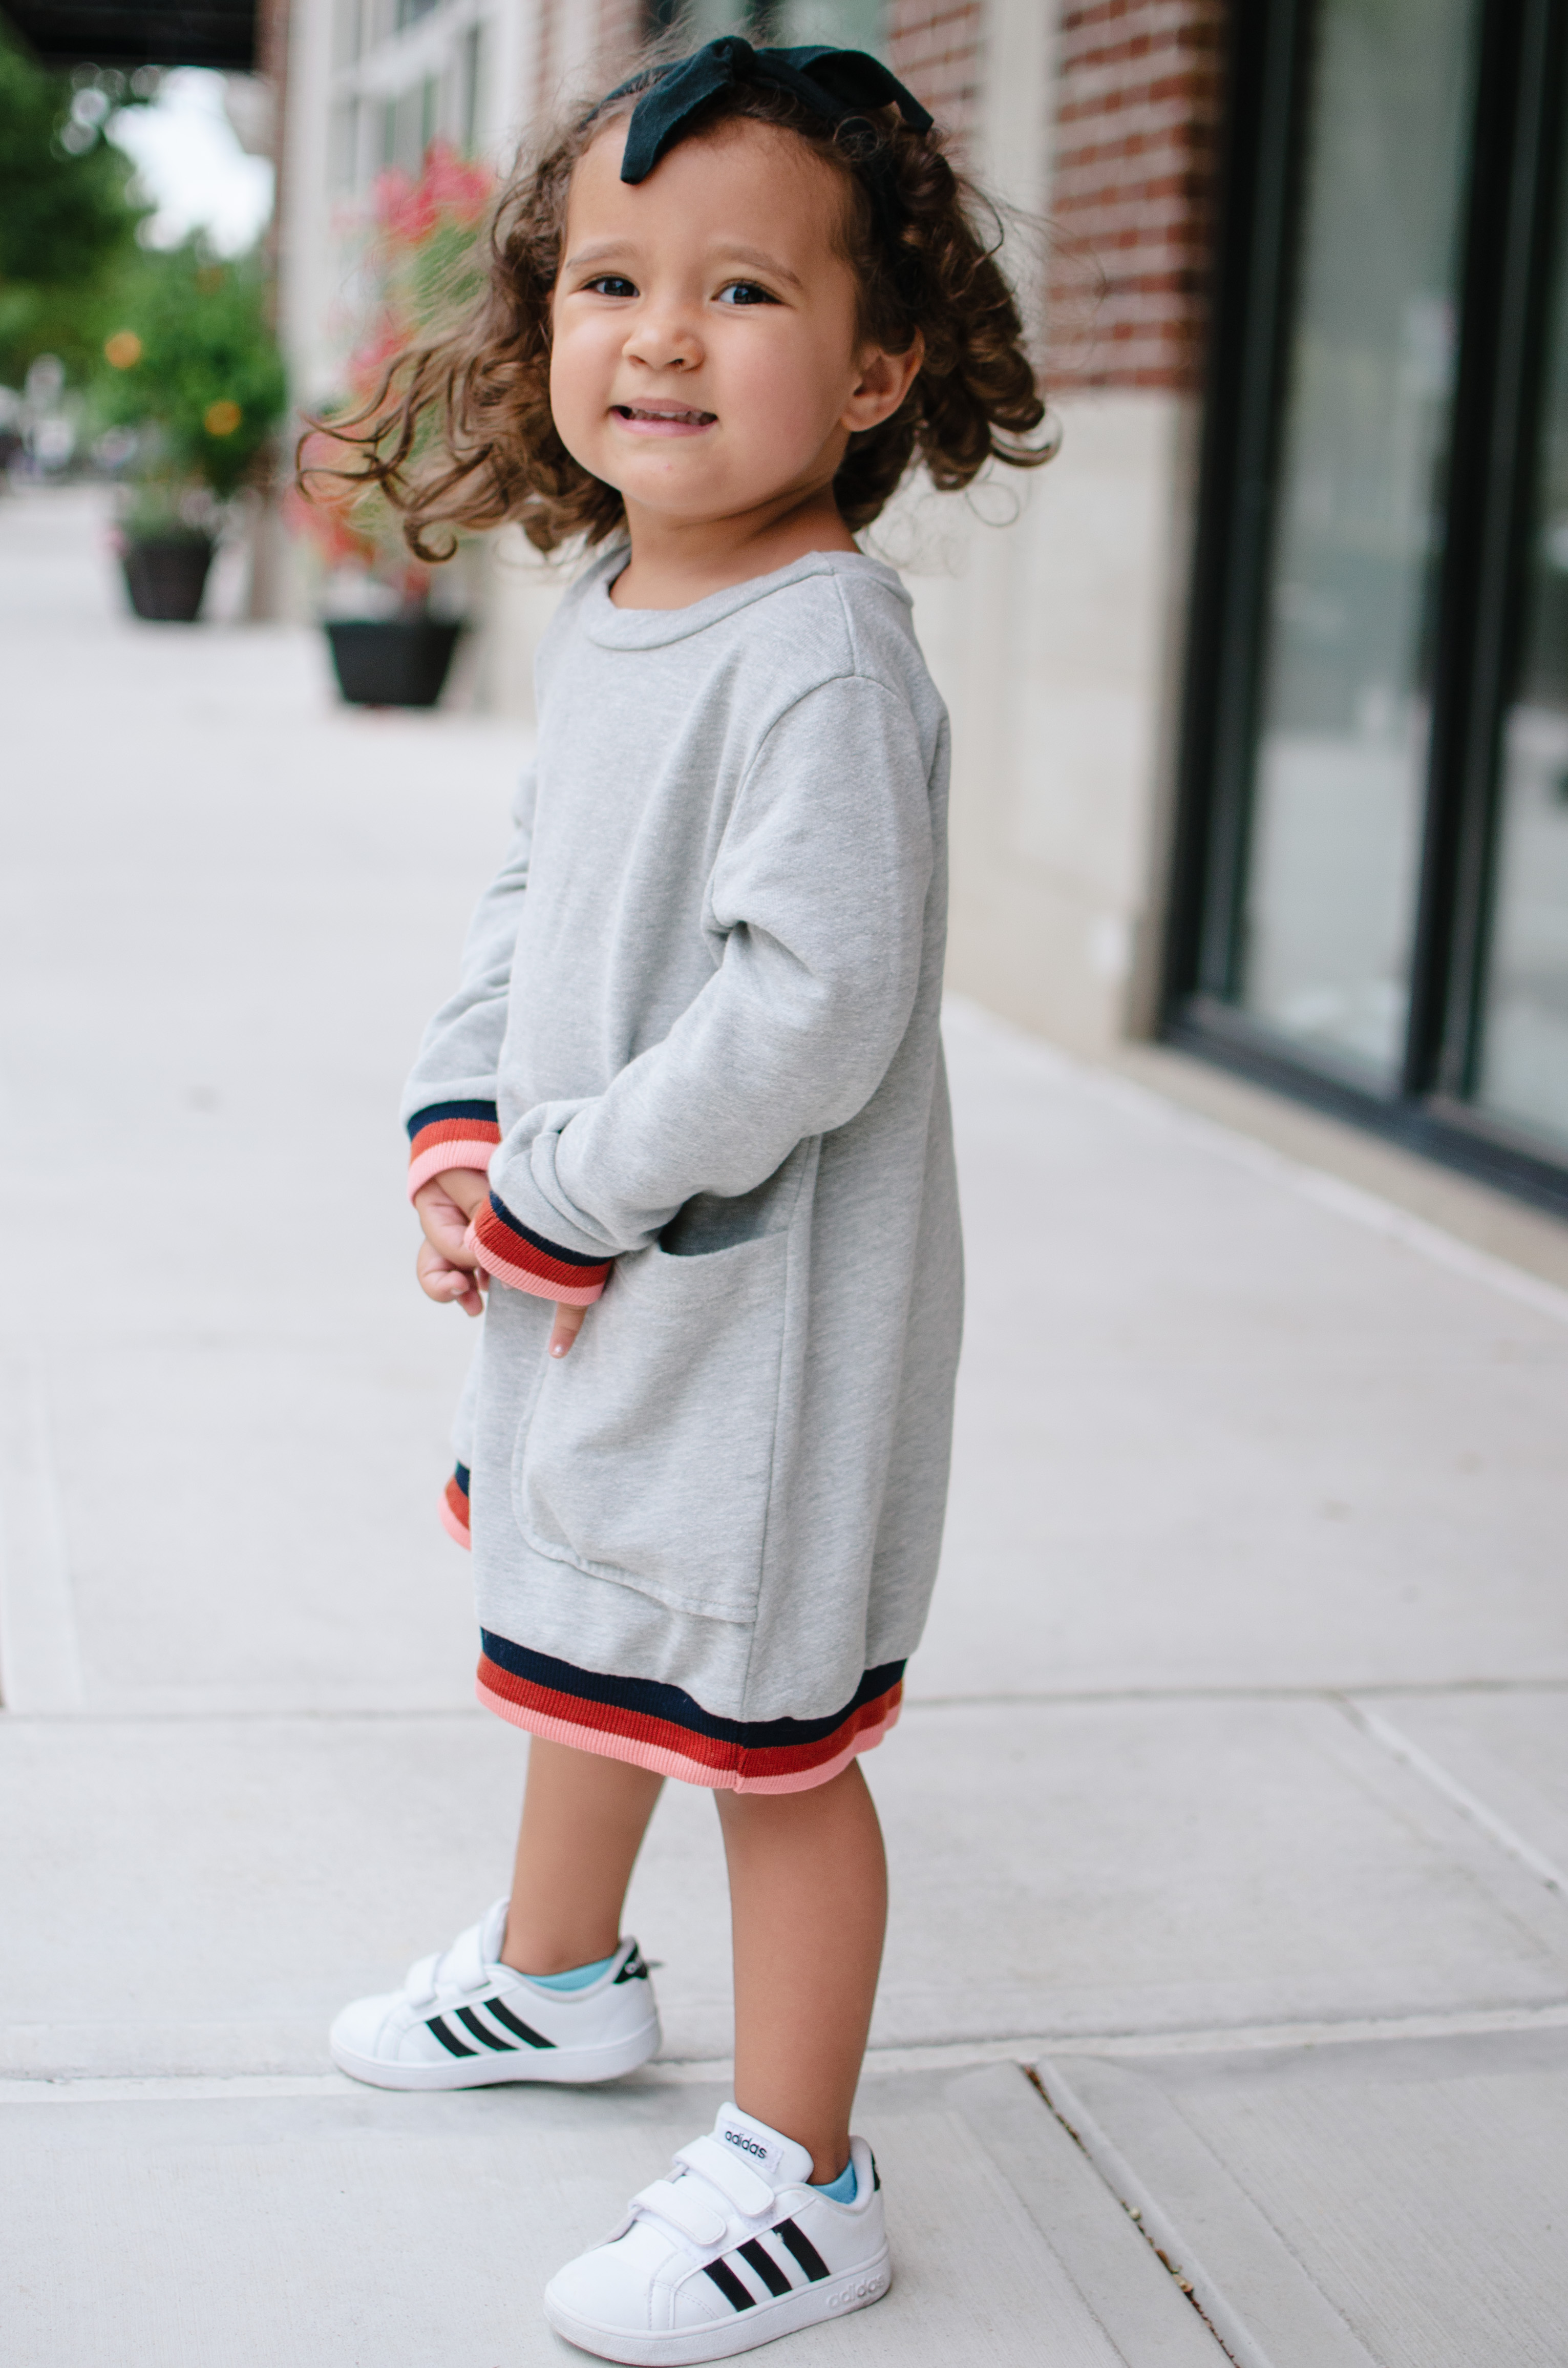 toddler girl fall outfit ideas - toddler sweatshirt dress | See more cute toddler outfits at bylaurenm.com!